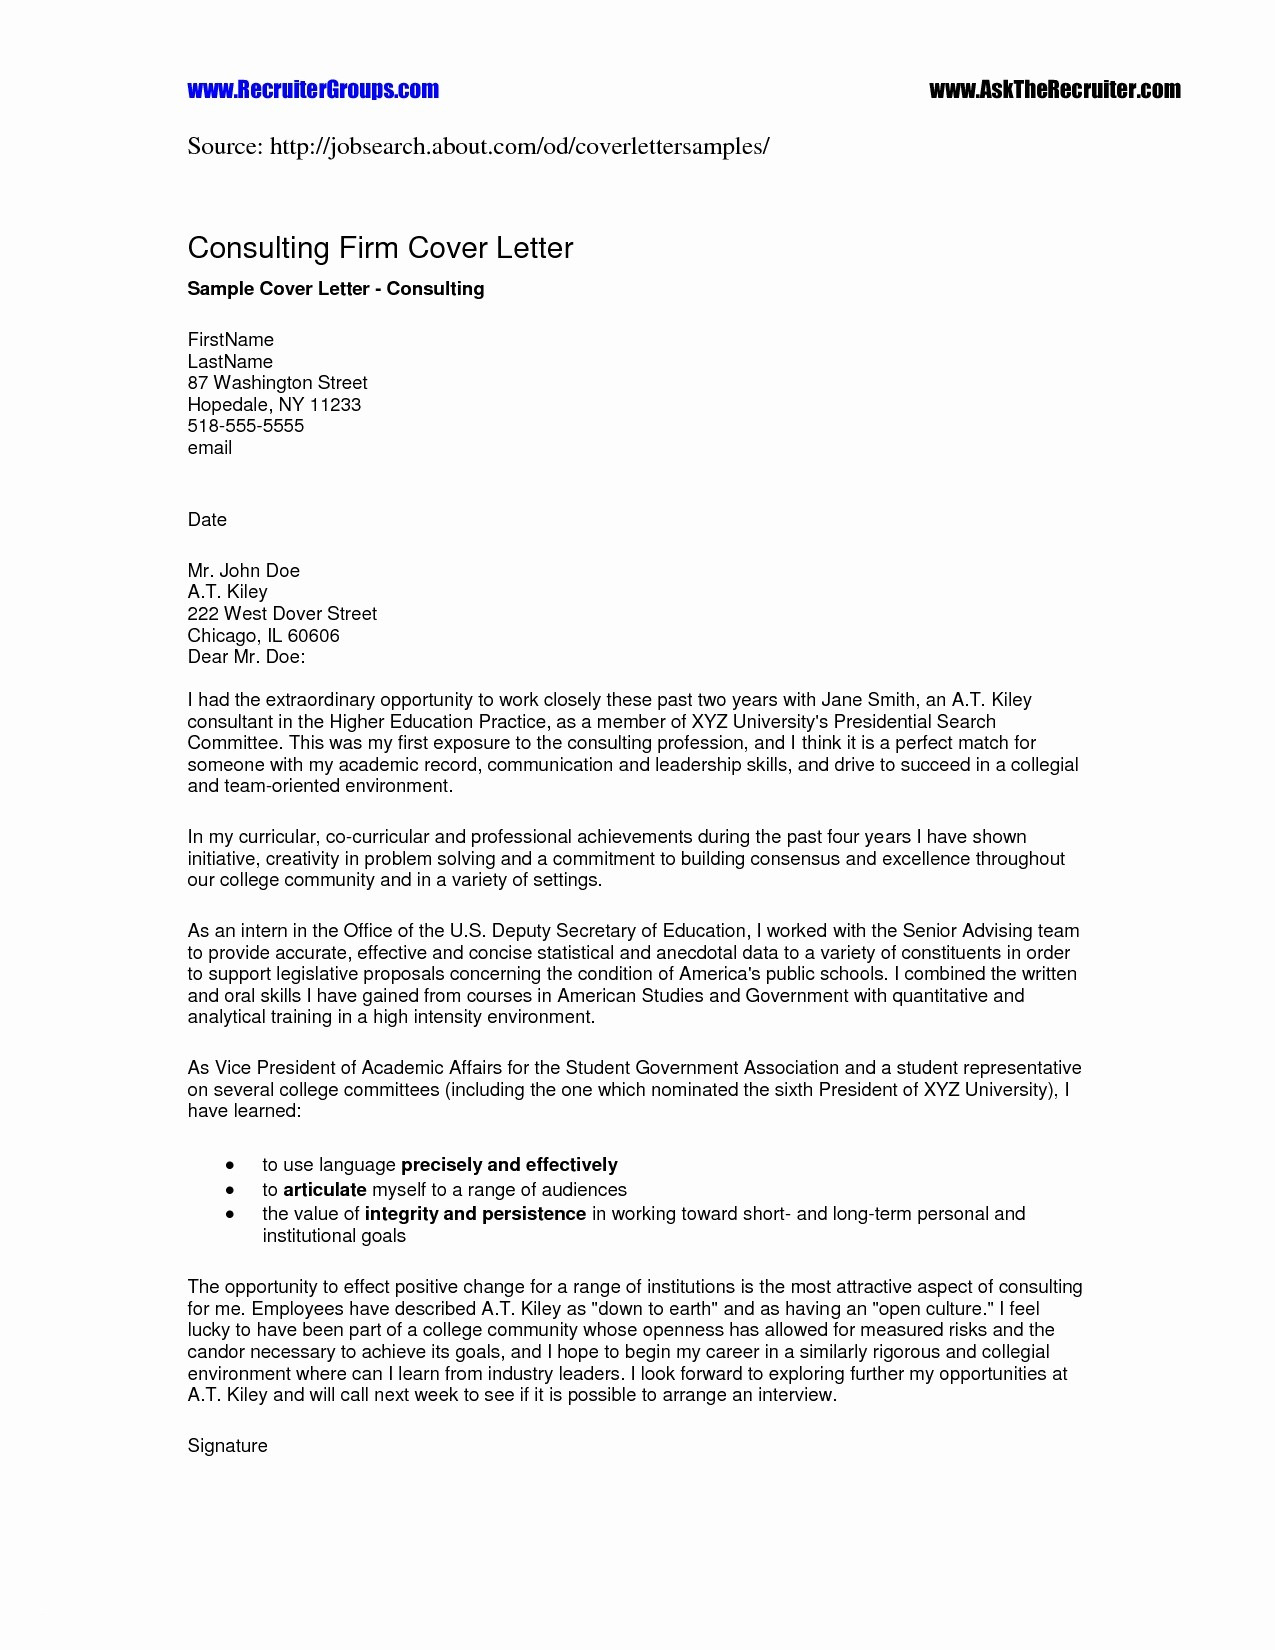 Impressive Cover Letter Template - Teachers Resume Cover Letter Awesome Teacher Cover Letter Template